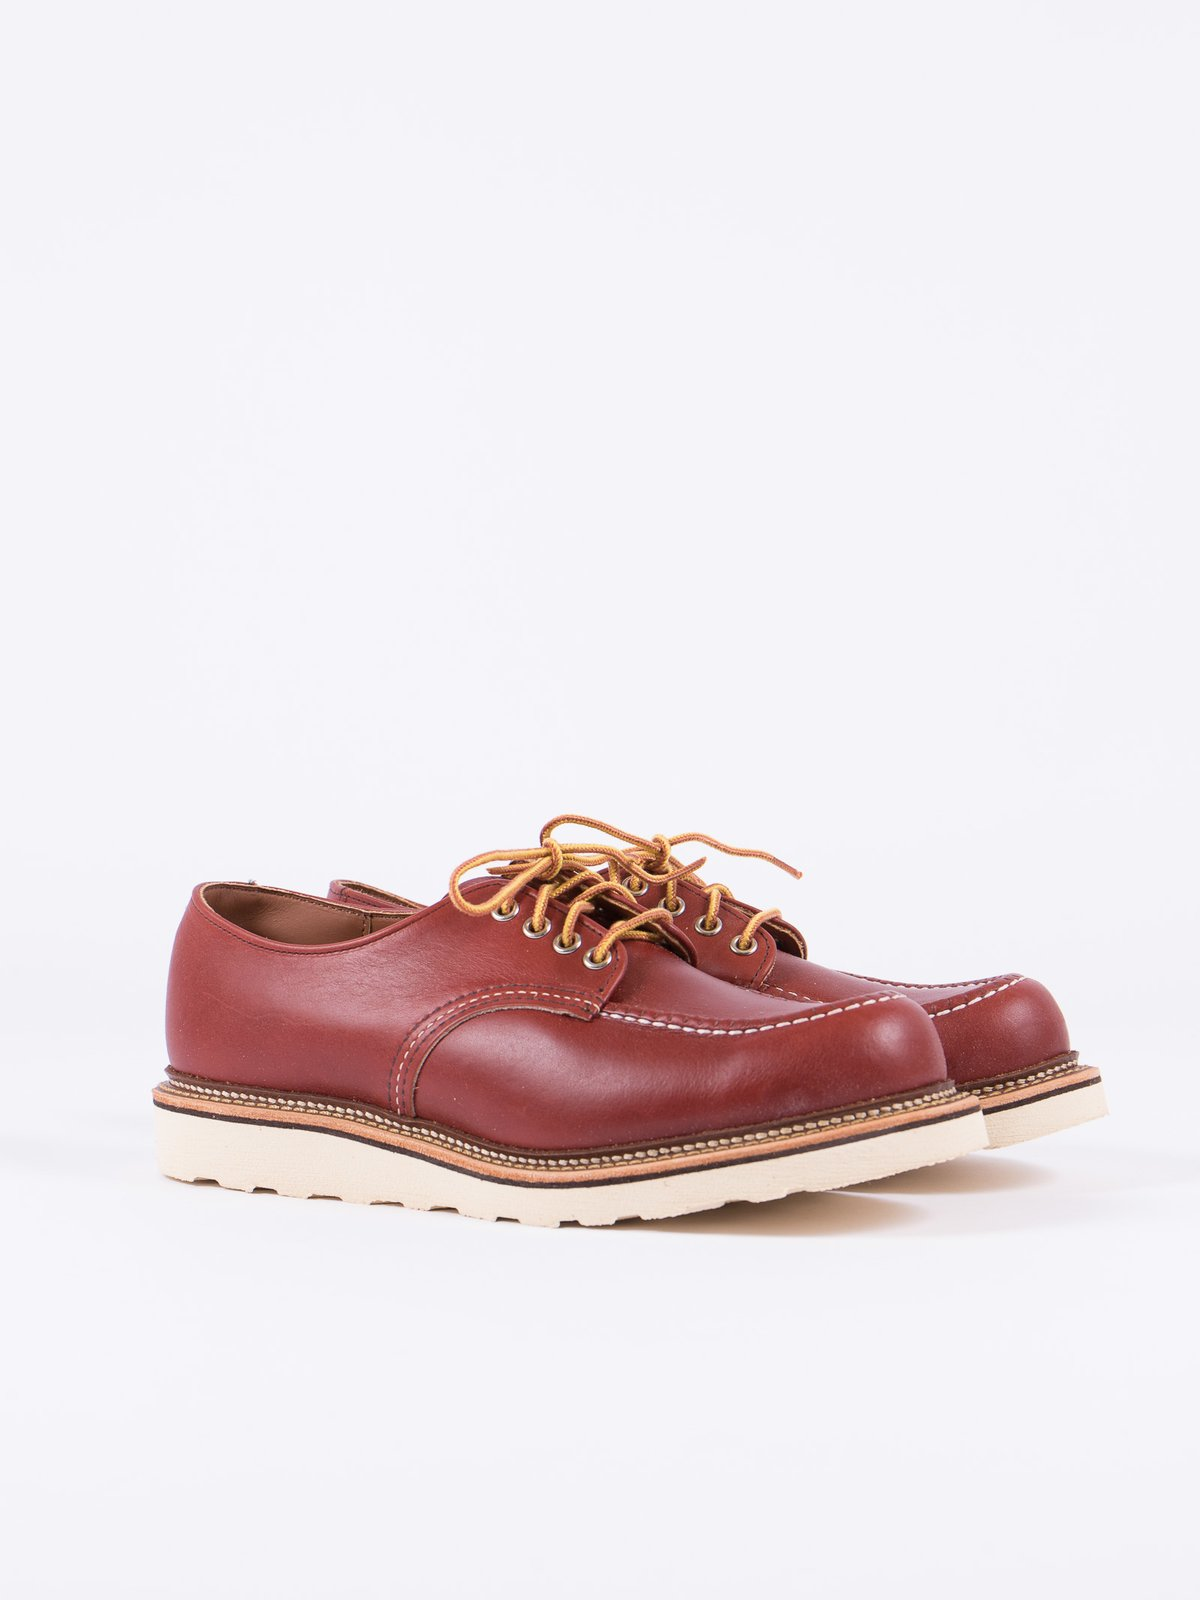 Oro Russet Portage 8103 Classic Oxford Shoe - Image 1